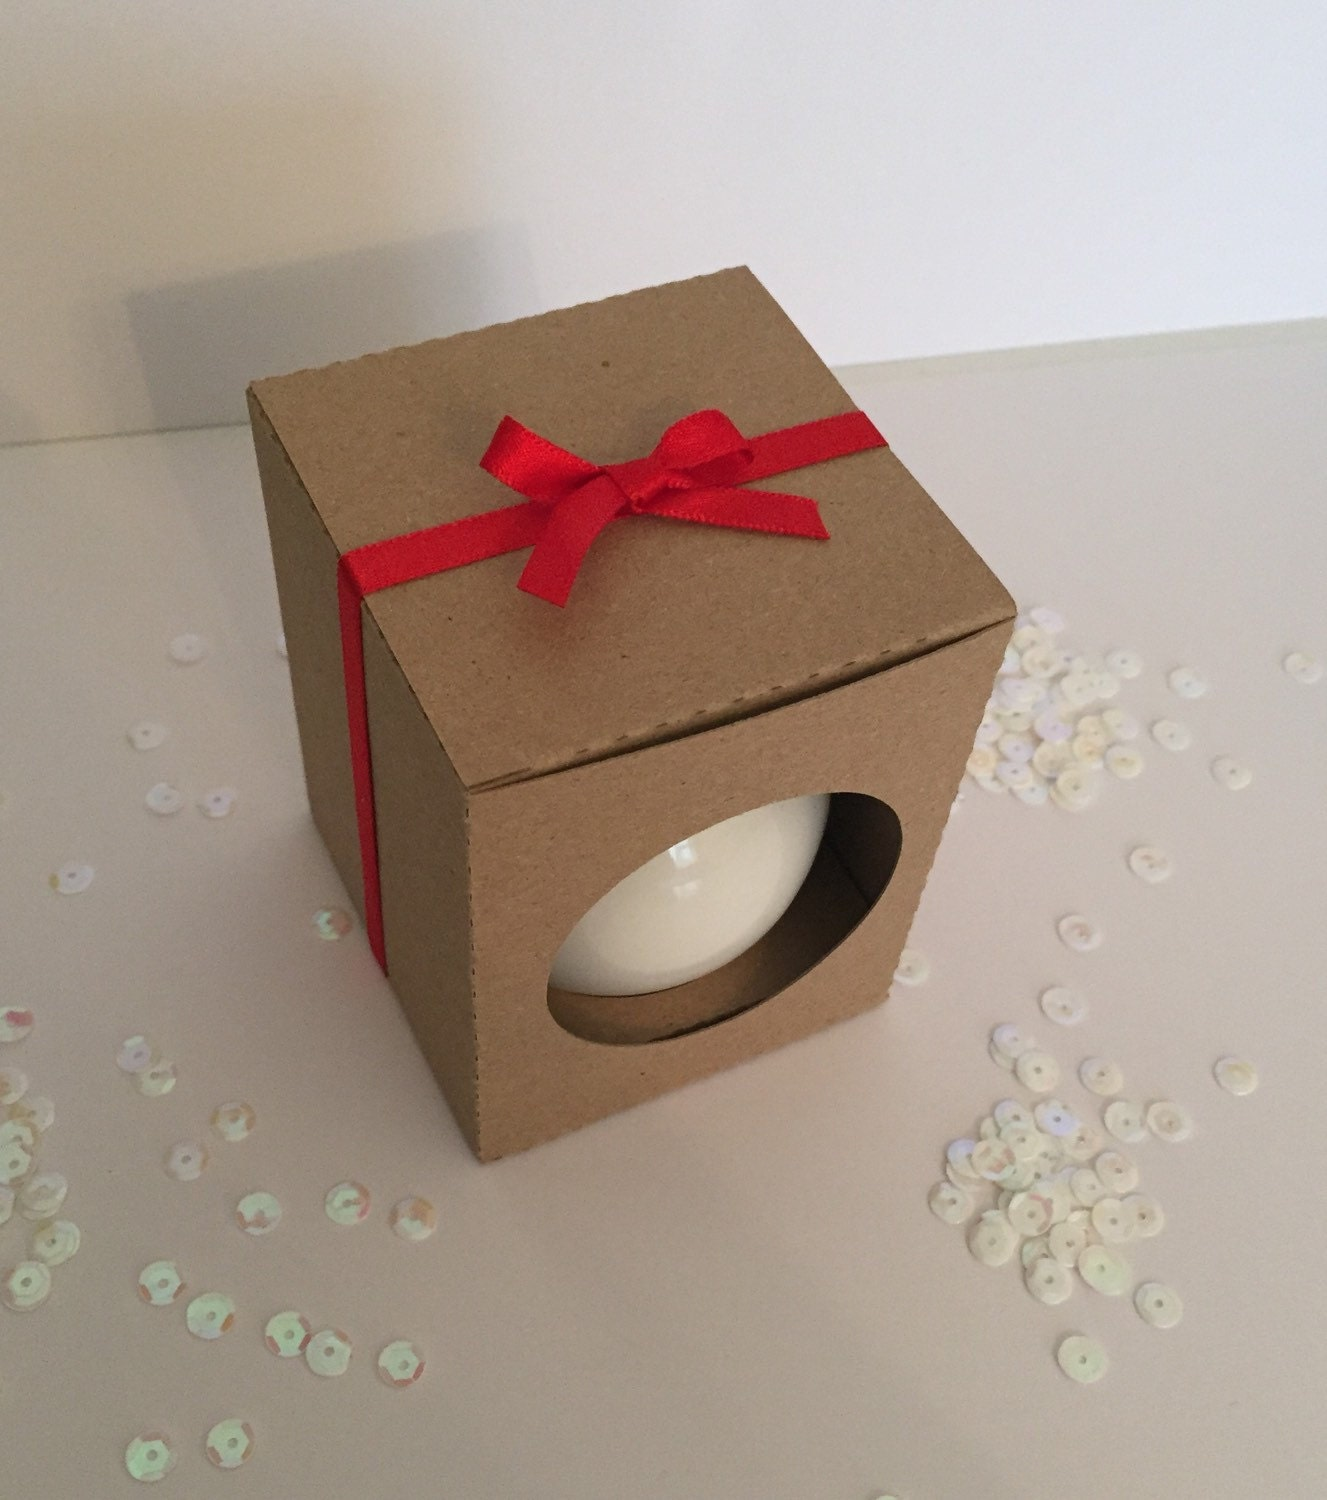 Christmas ornament cm bauble gift box in kraft card with